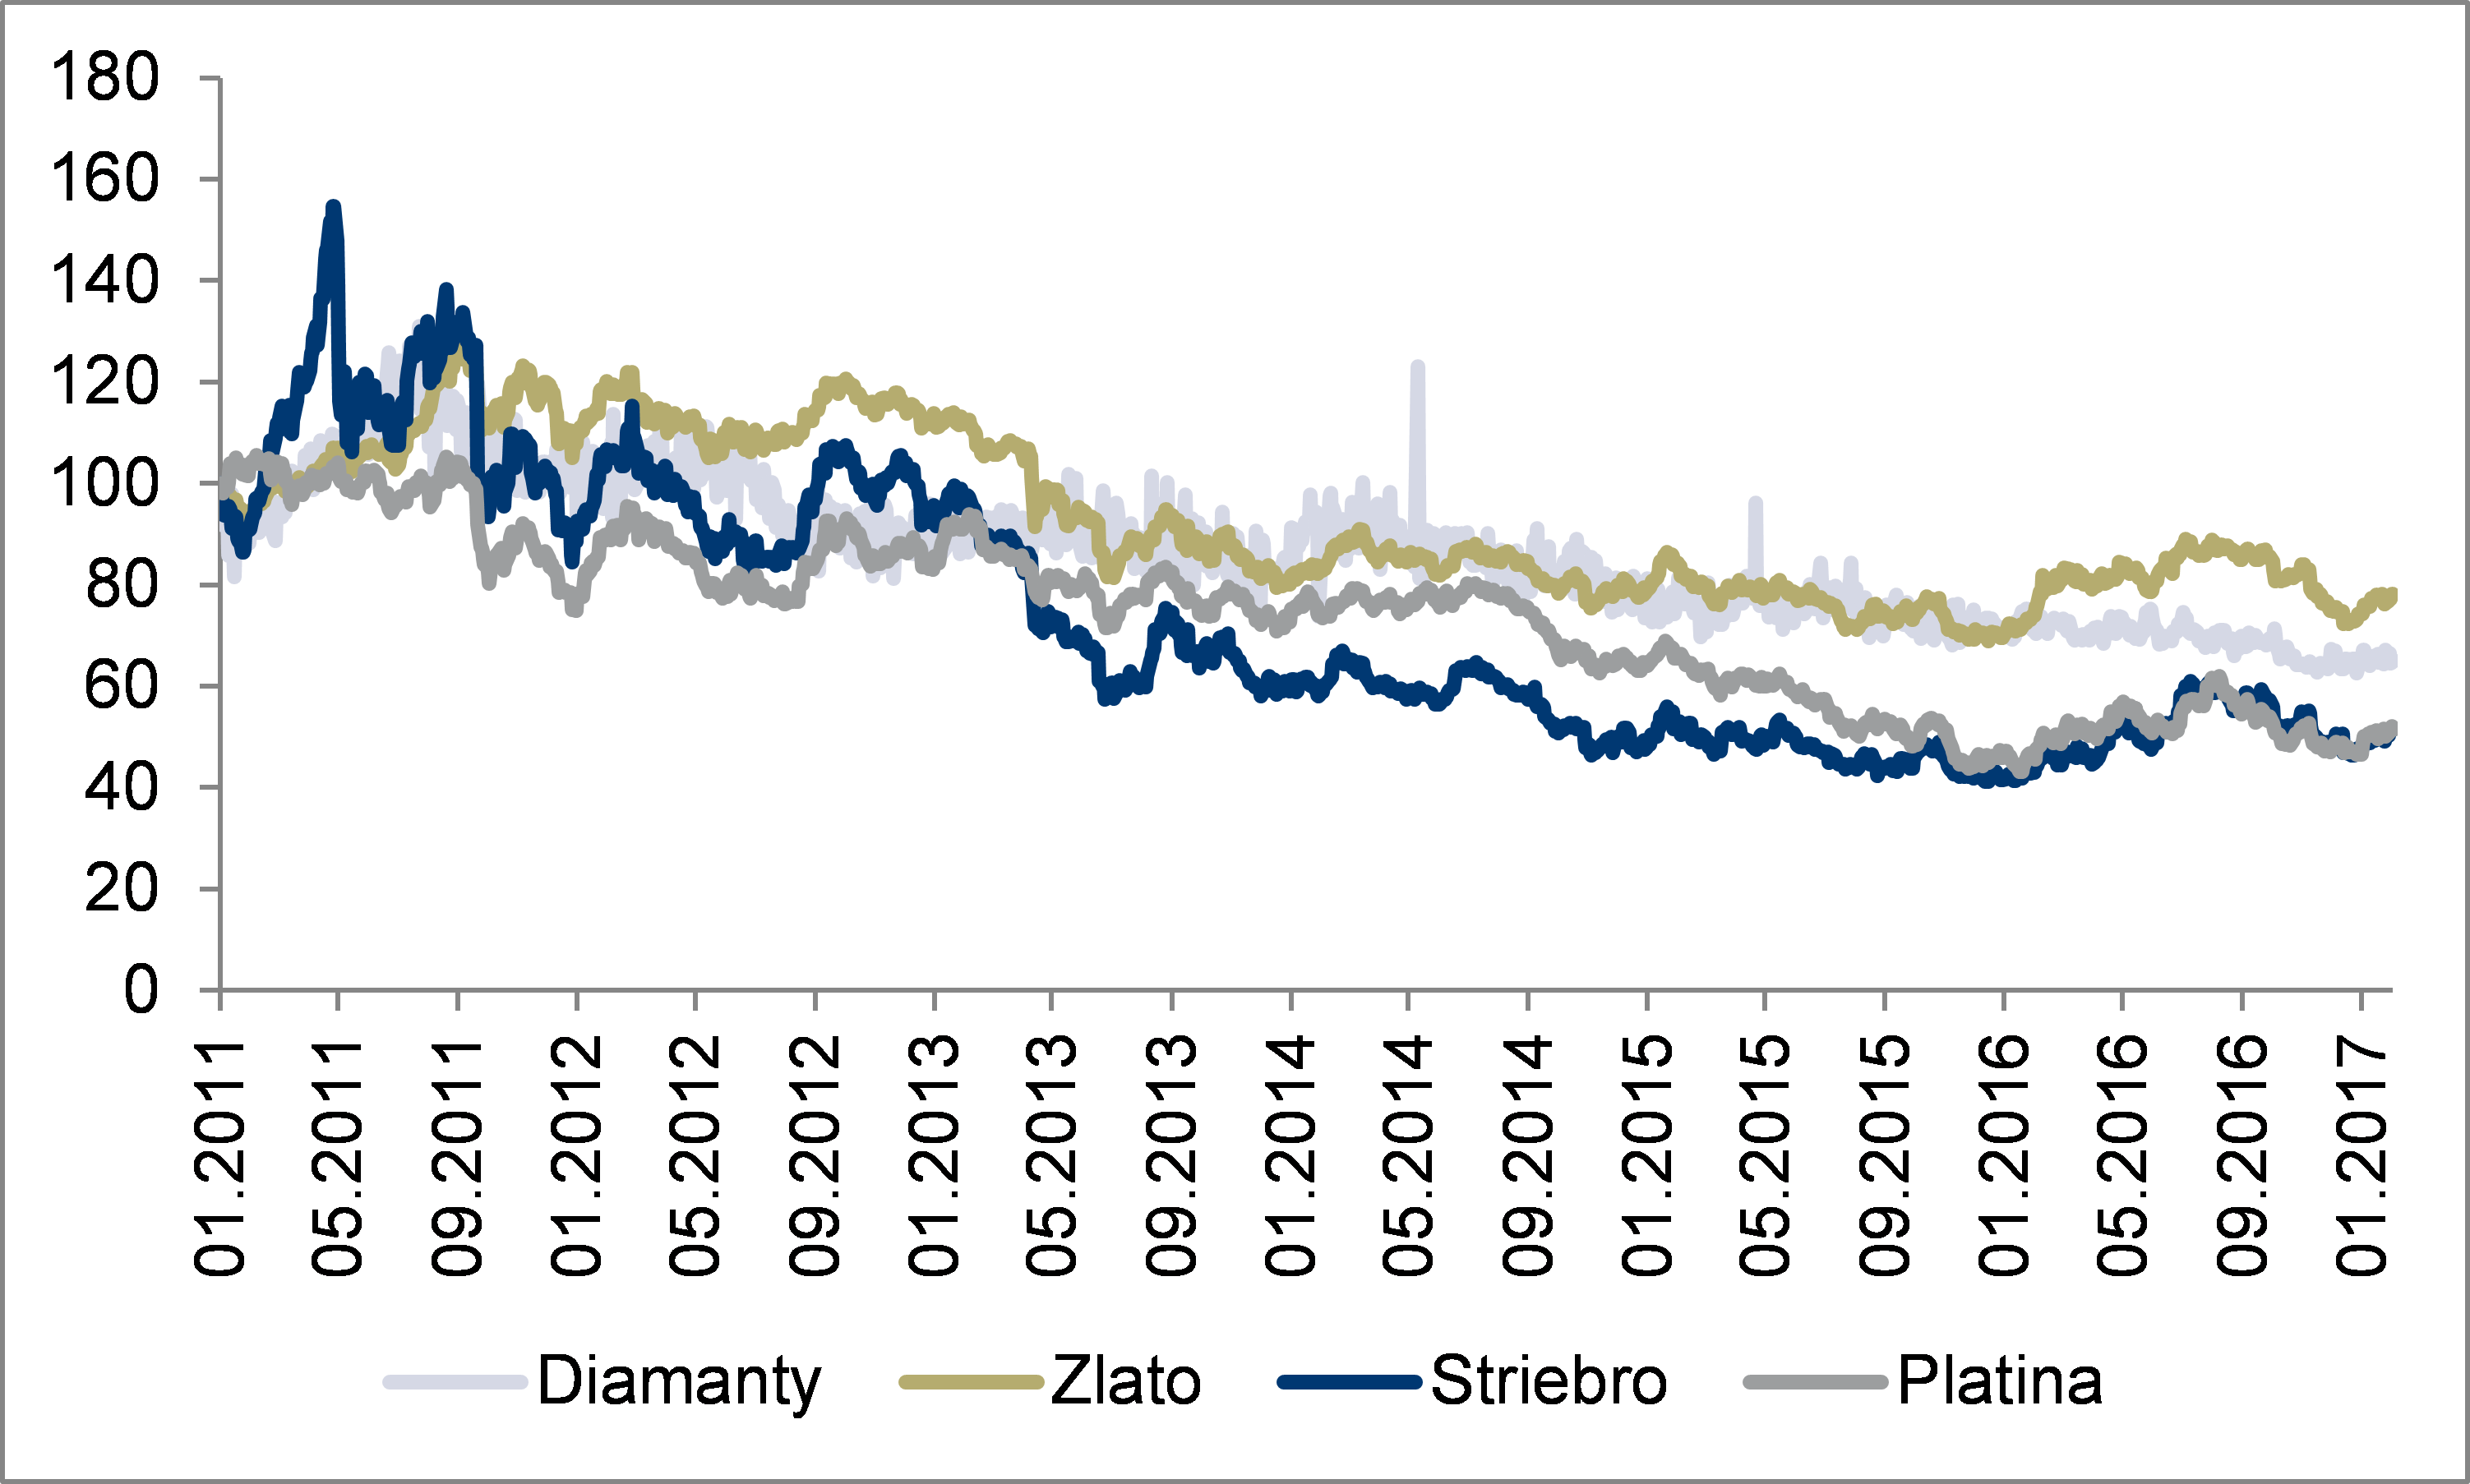 Real prices of diamonds, gold, silver and platinum, Index